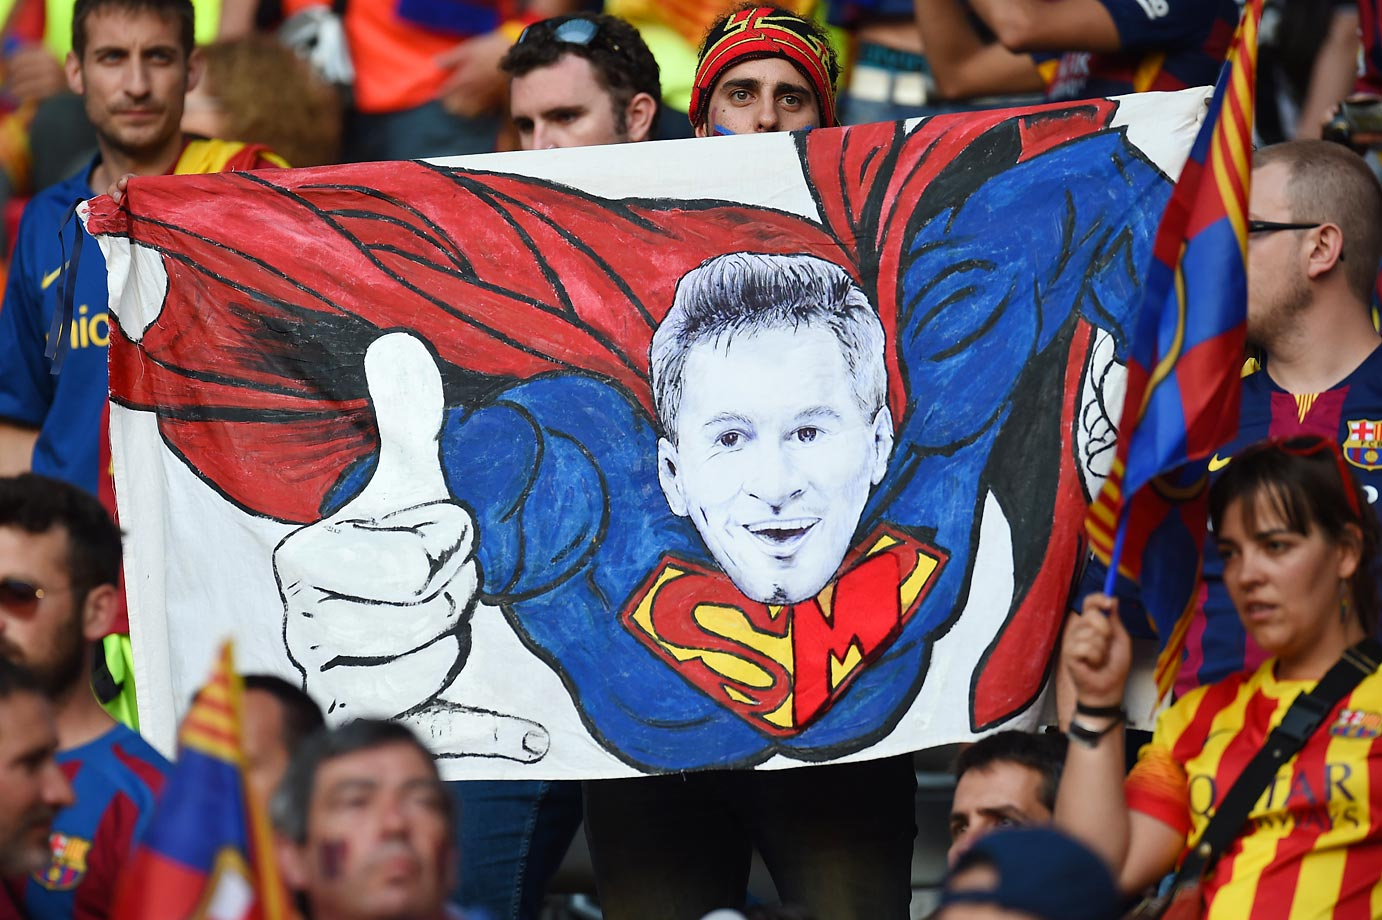 FC Barcelona fans display a poster of Lionel Messi as Superman before the UEFA Champions League Final between Juventus and FC Barcelona in Berlin on June 6.